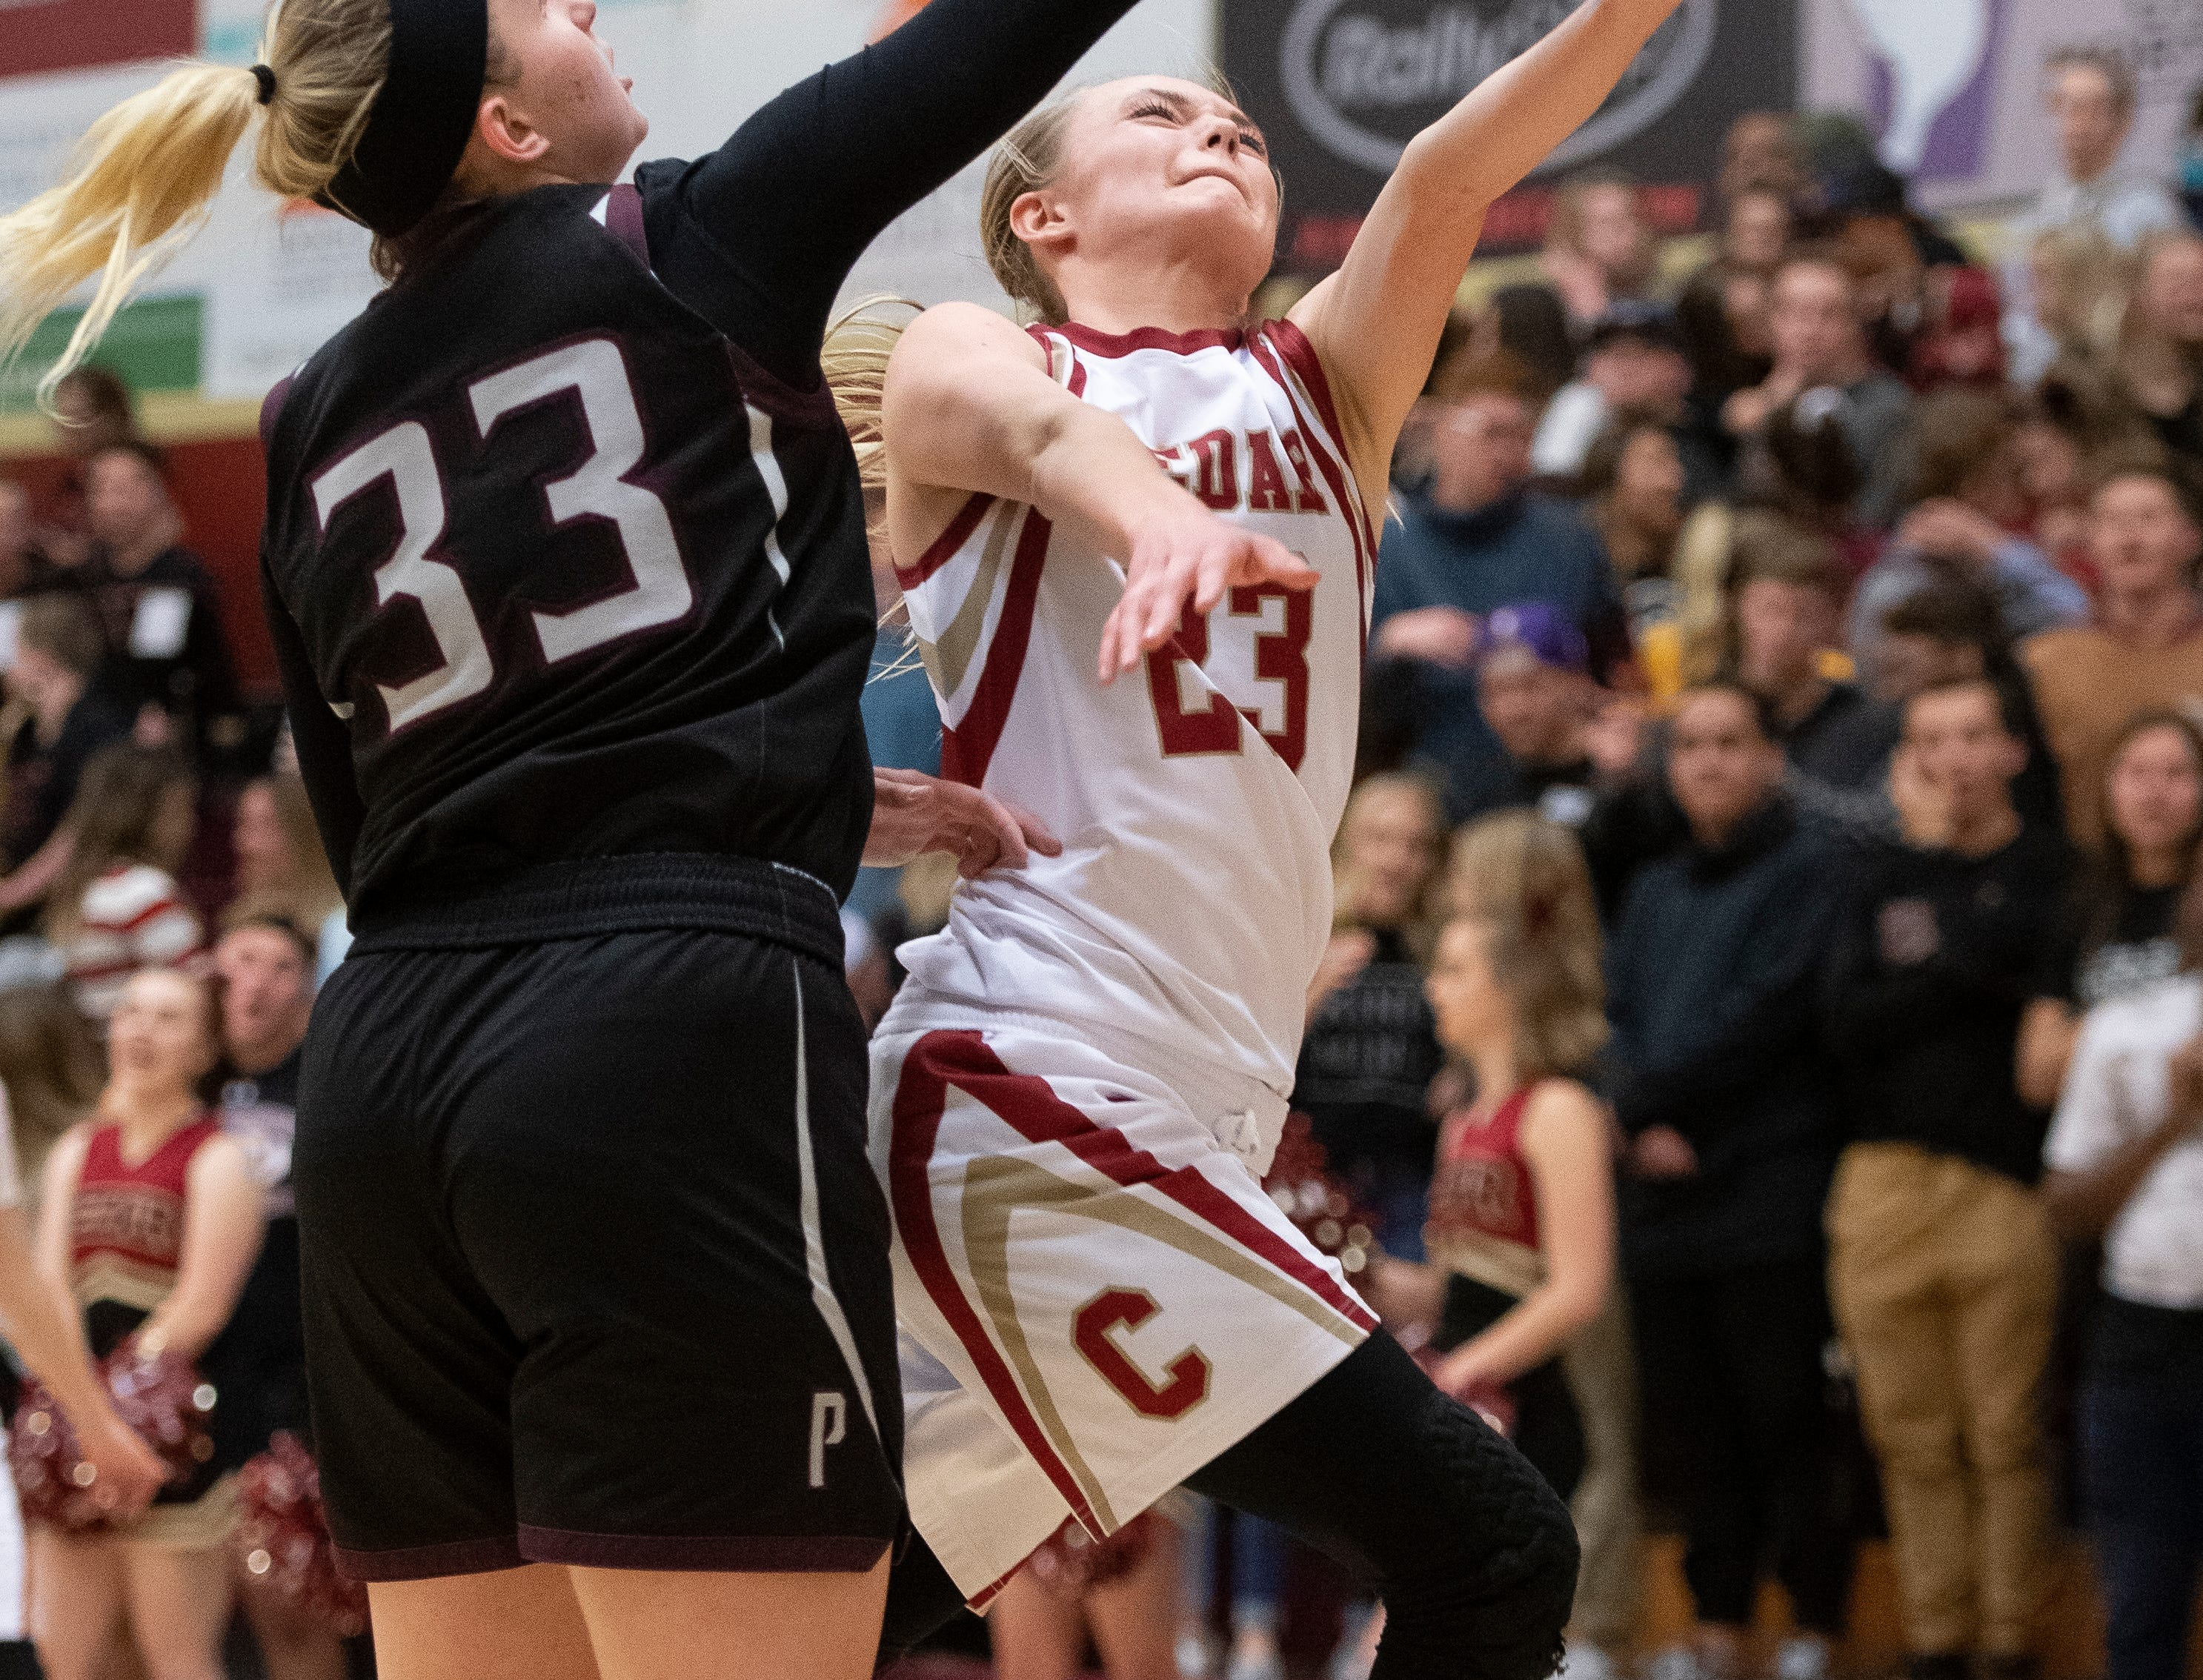 Cedar High School junior Mayci Torgerson's shot is blocked by Pine View's Bailey Hofheins at CHS Tuesday, January 8, 2019. Cedar remains undefeated with a 63-40 win over the Panthers.